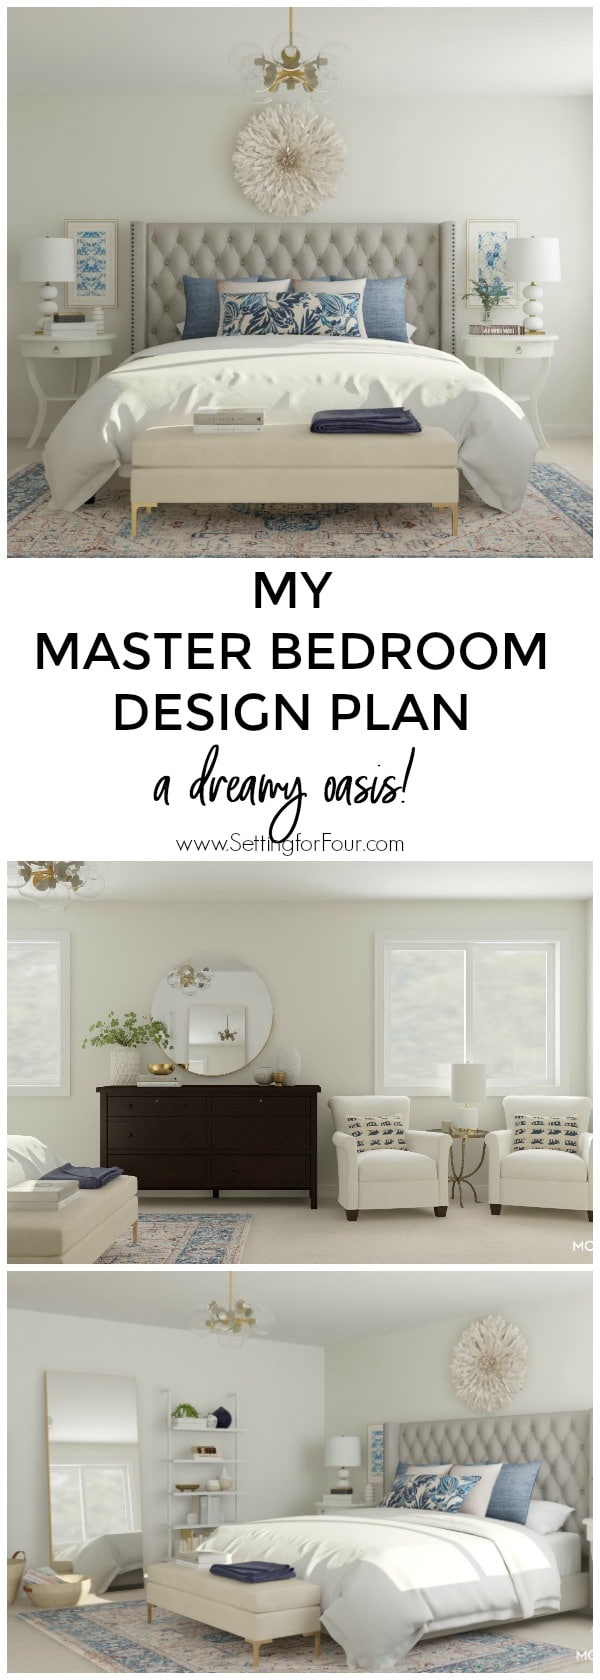 My master bedroom design plan: a dreamy oasis for watching TV and reading! #bedroom #makoever #design #interiordesign #TV #readingnook